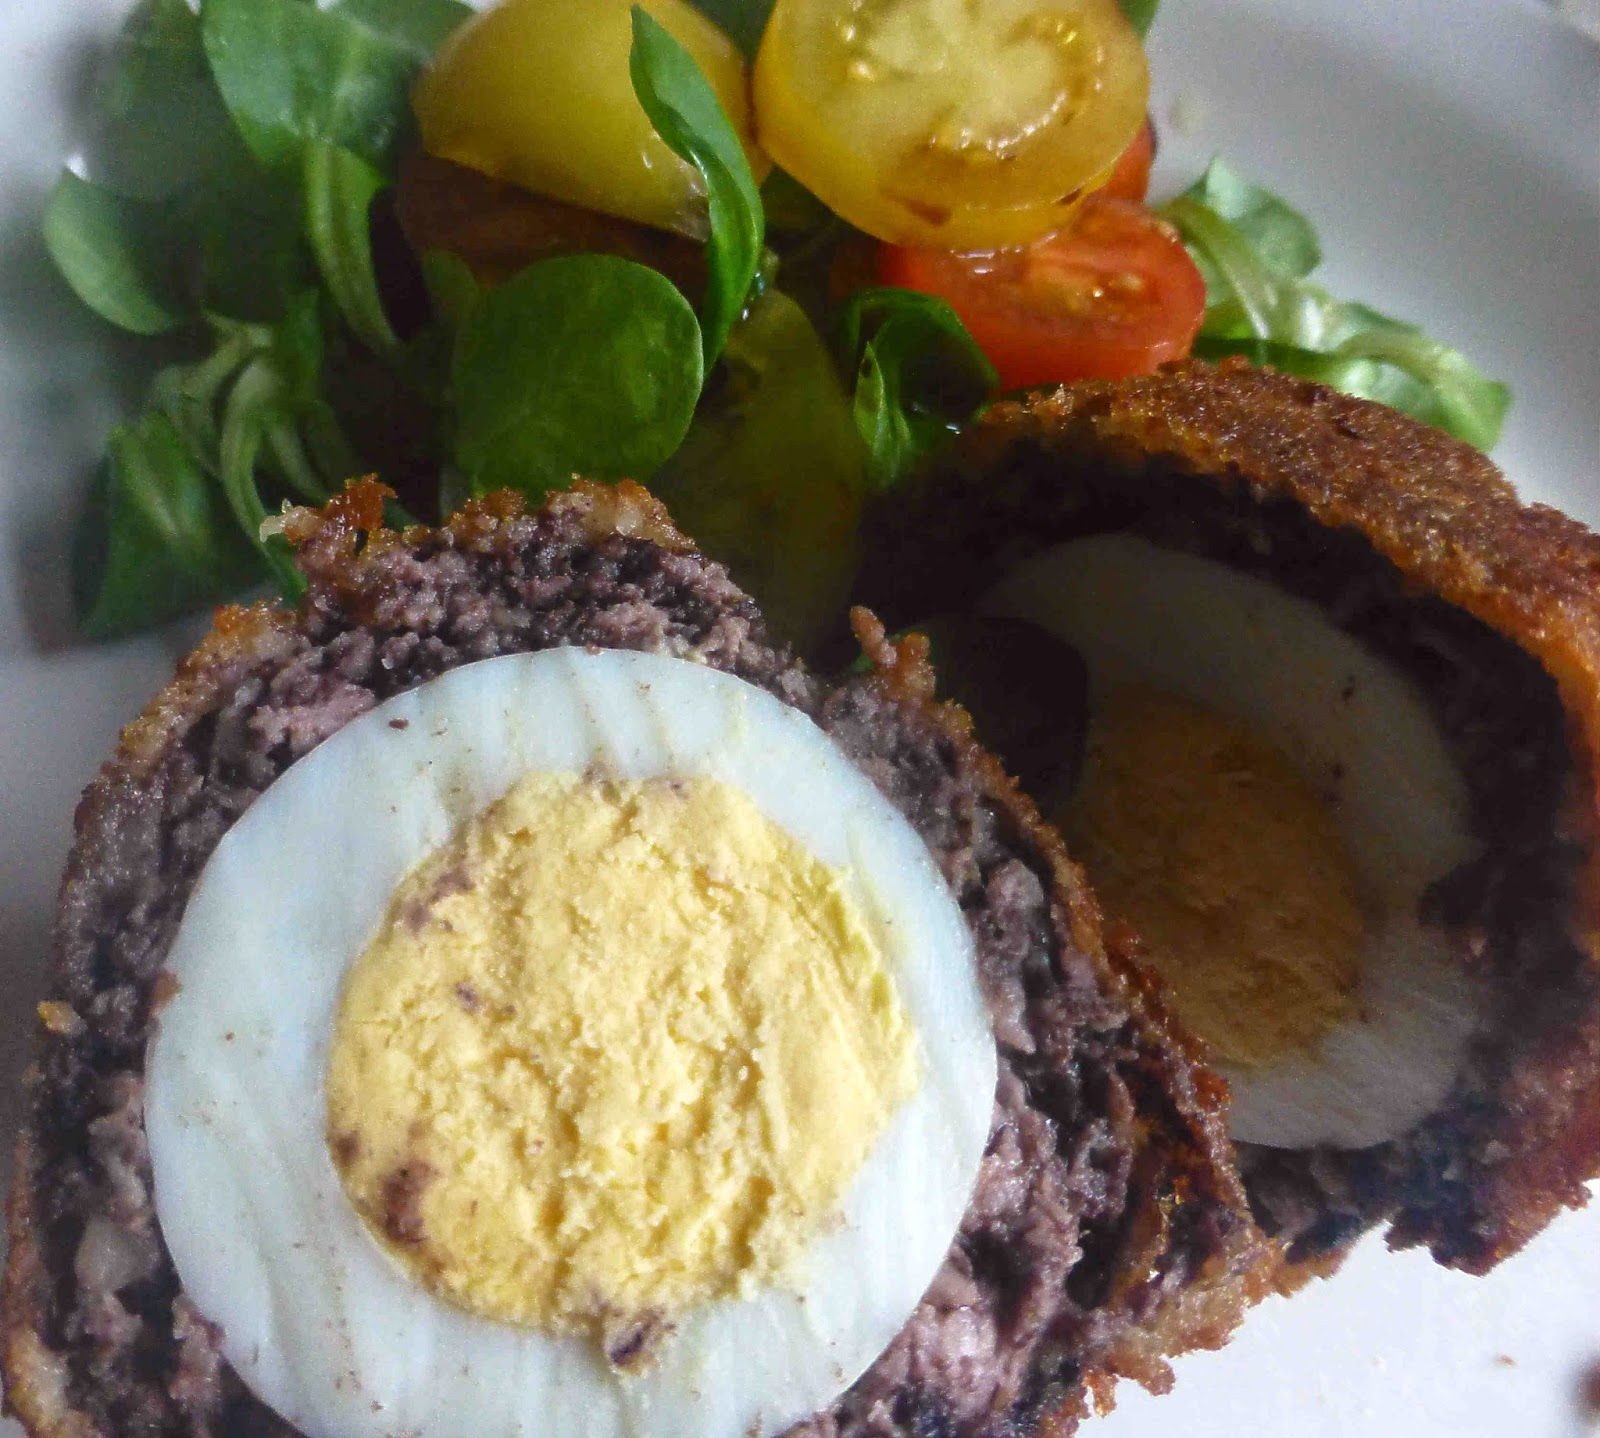 black and white pudding with an oriental touch